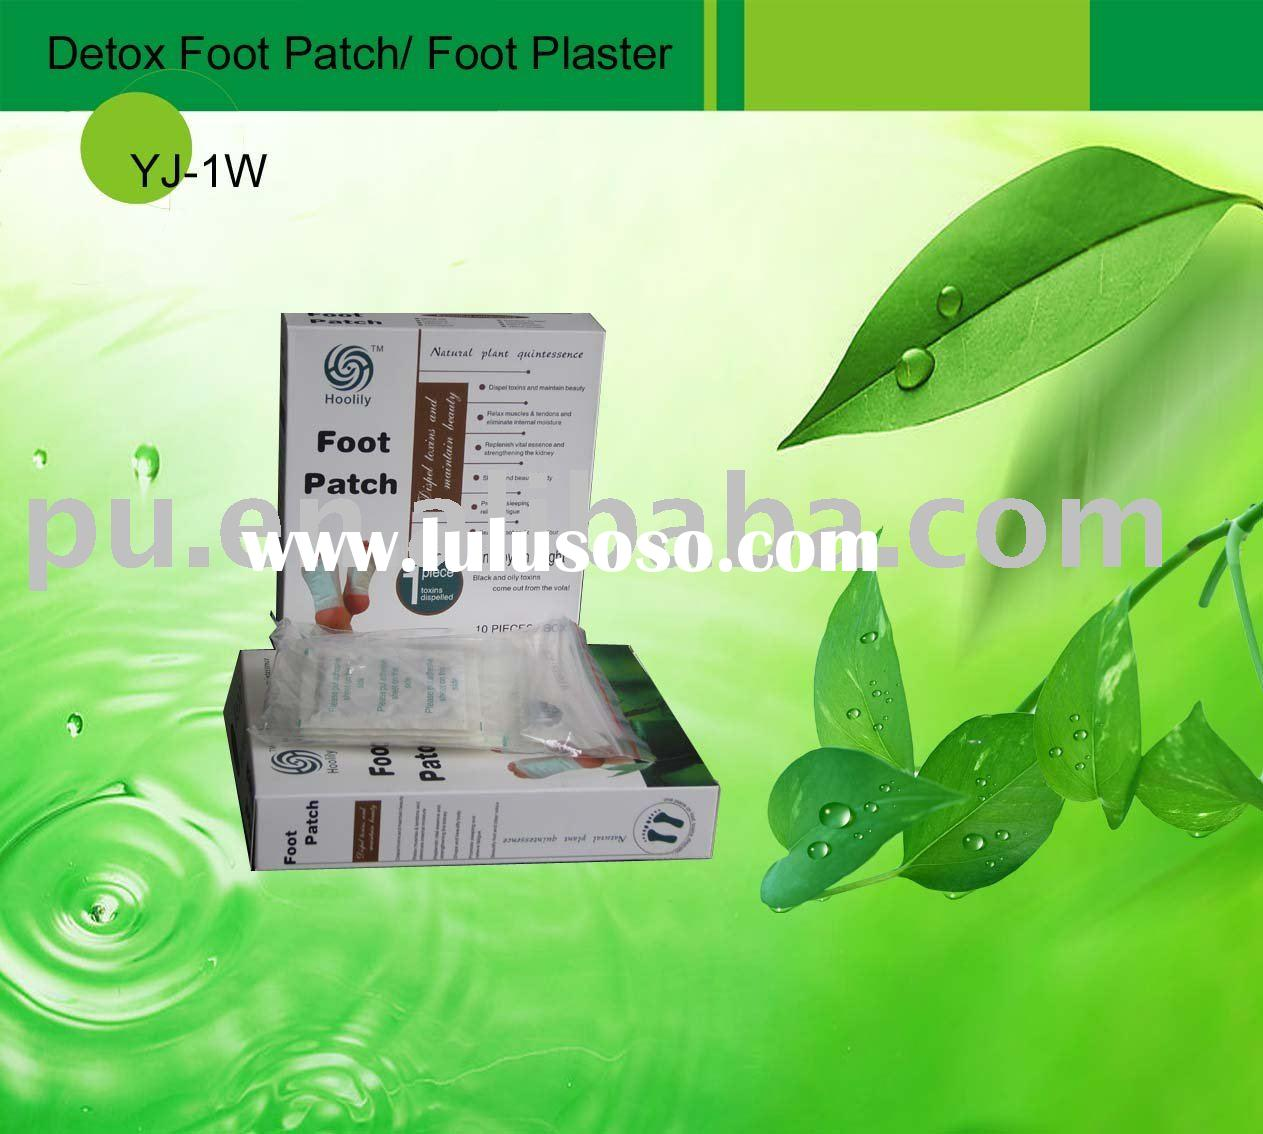 detox foot patch/ foot plaster/foot pads/sap patch/sap pad/sap sheet